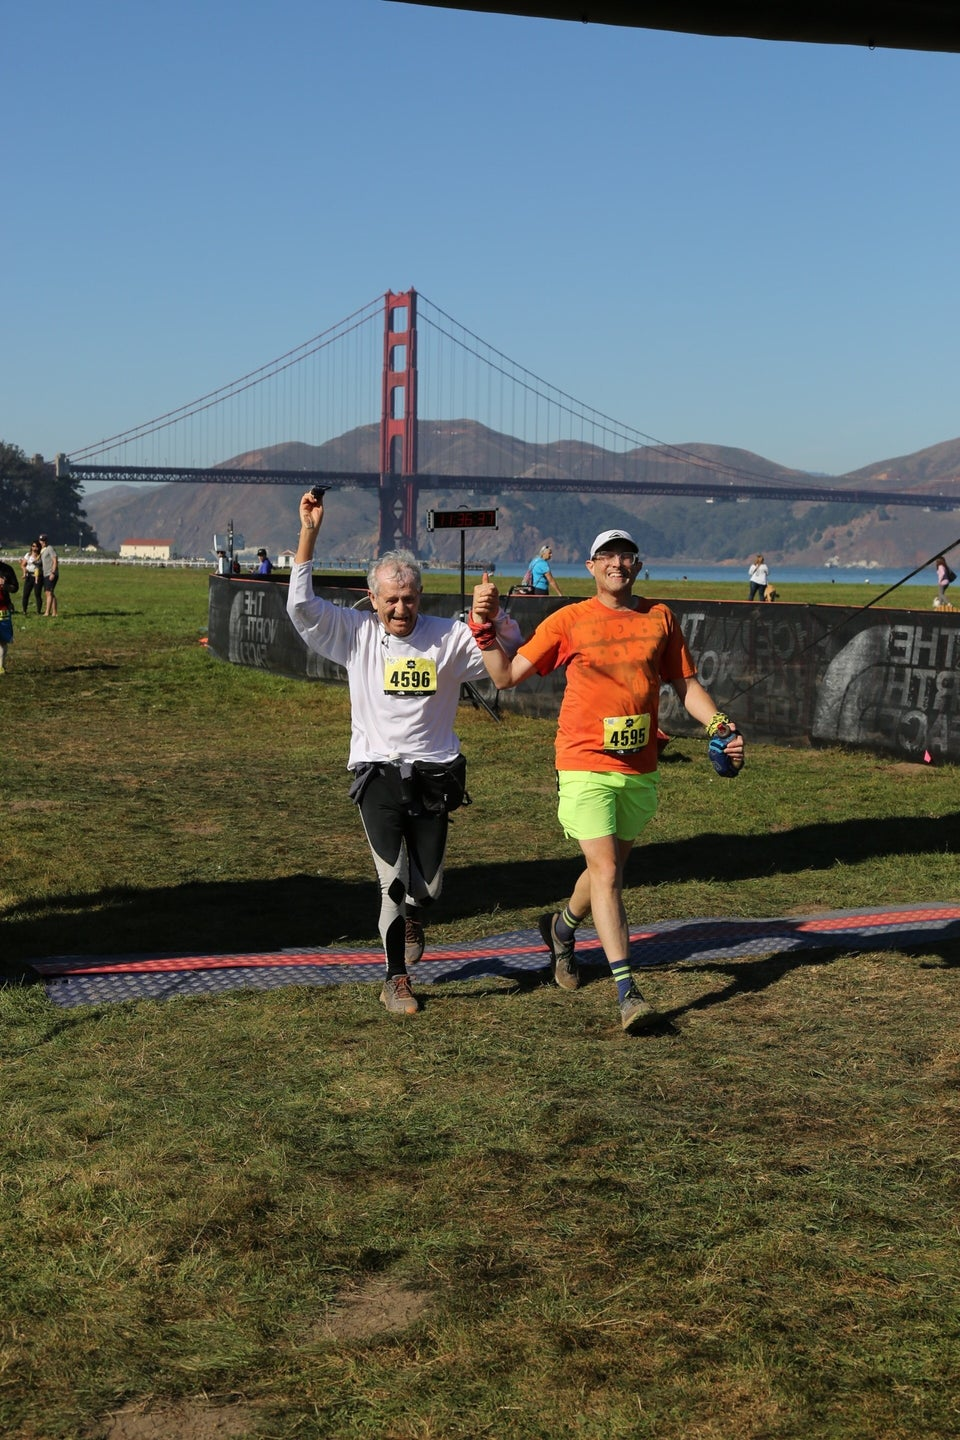 Hasan and Tantek smiling side by side holding raised hands between them, just after they crossed The North Face Endurance Challenge finish line in Crissy Field, San Francisco, with the Golden Gate Bridge and Marin Headlands in the background under a clear blue sky.